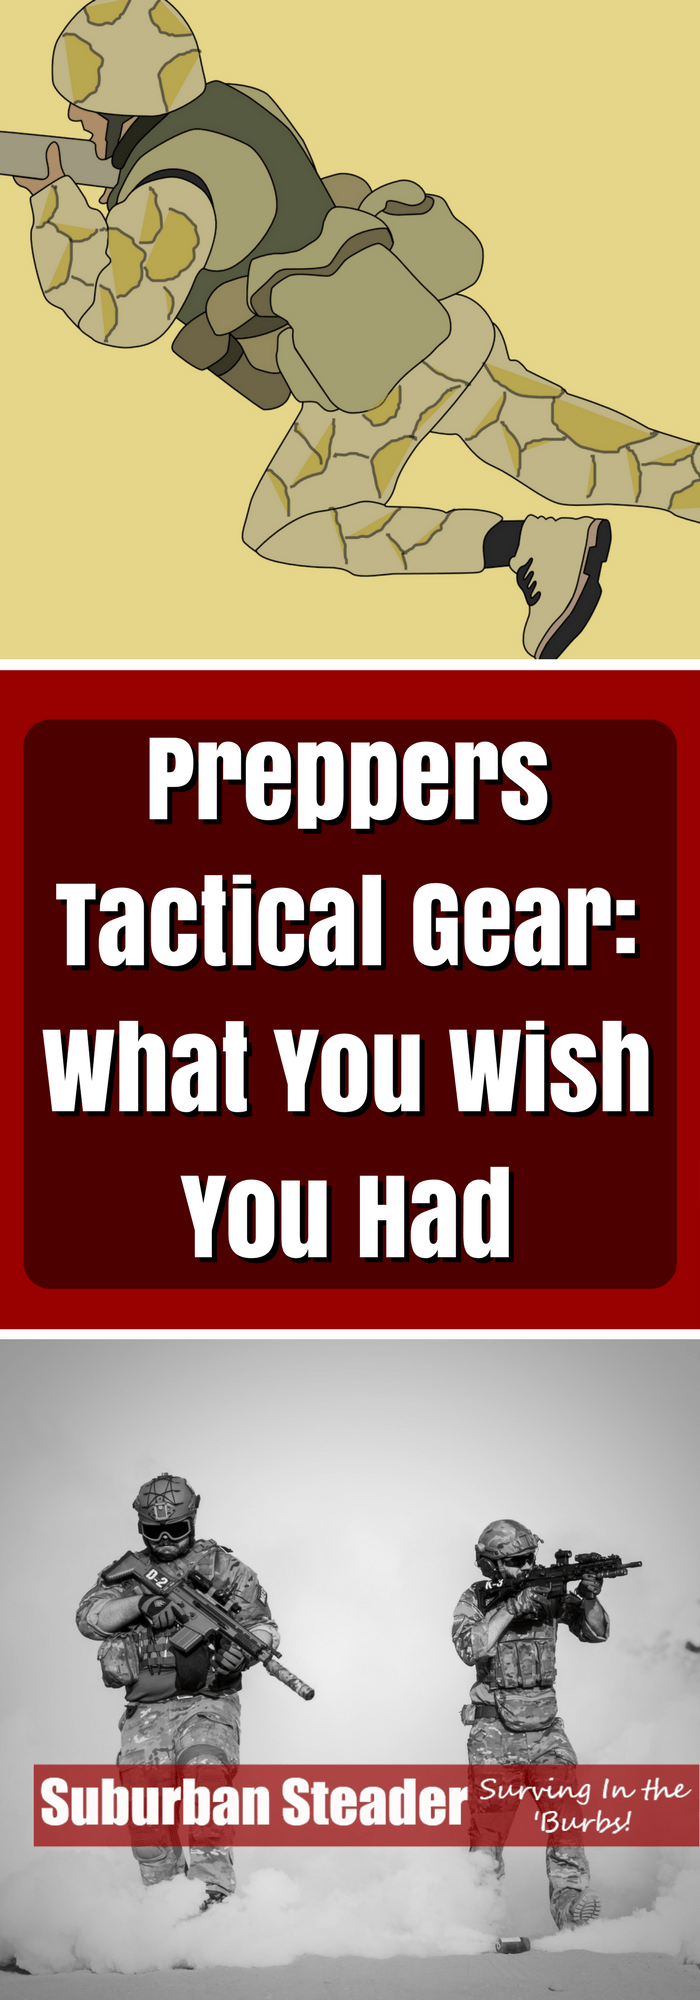 Tactical Gear for Preppers - What You Wish You Had